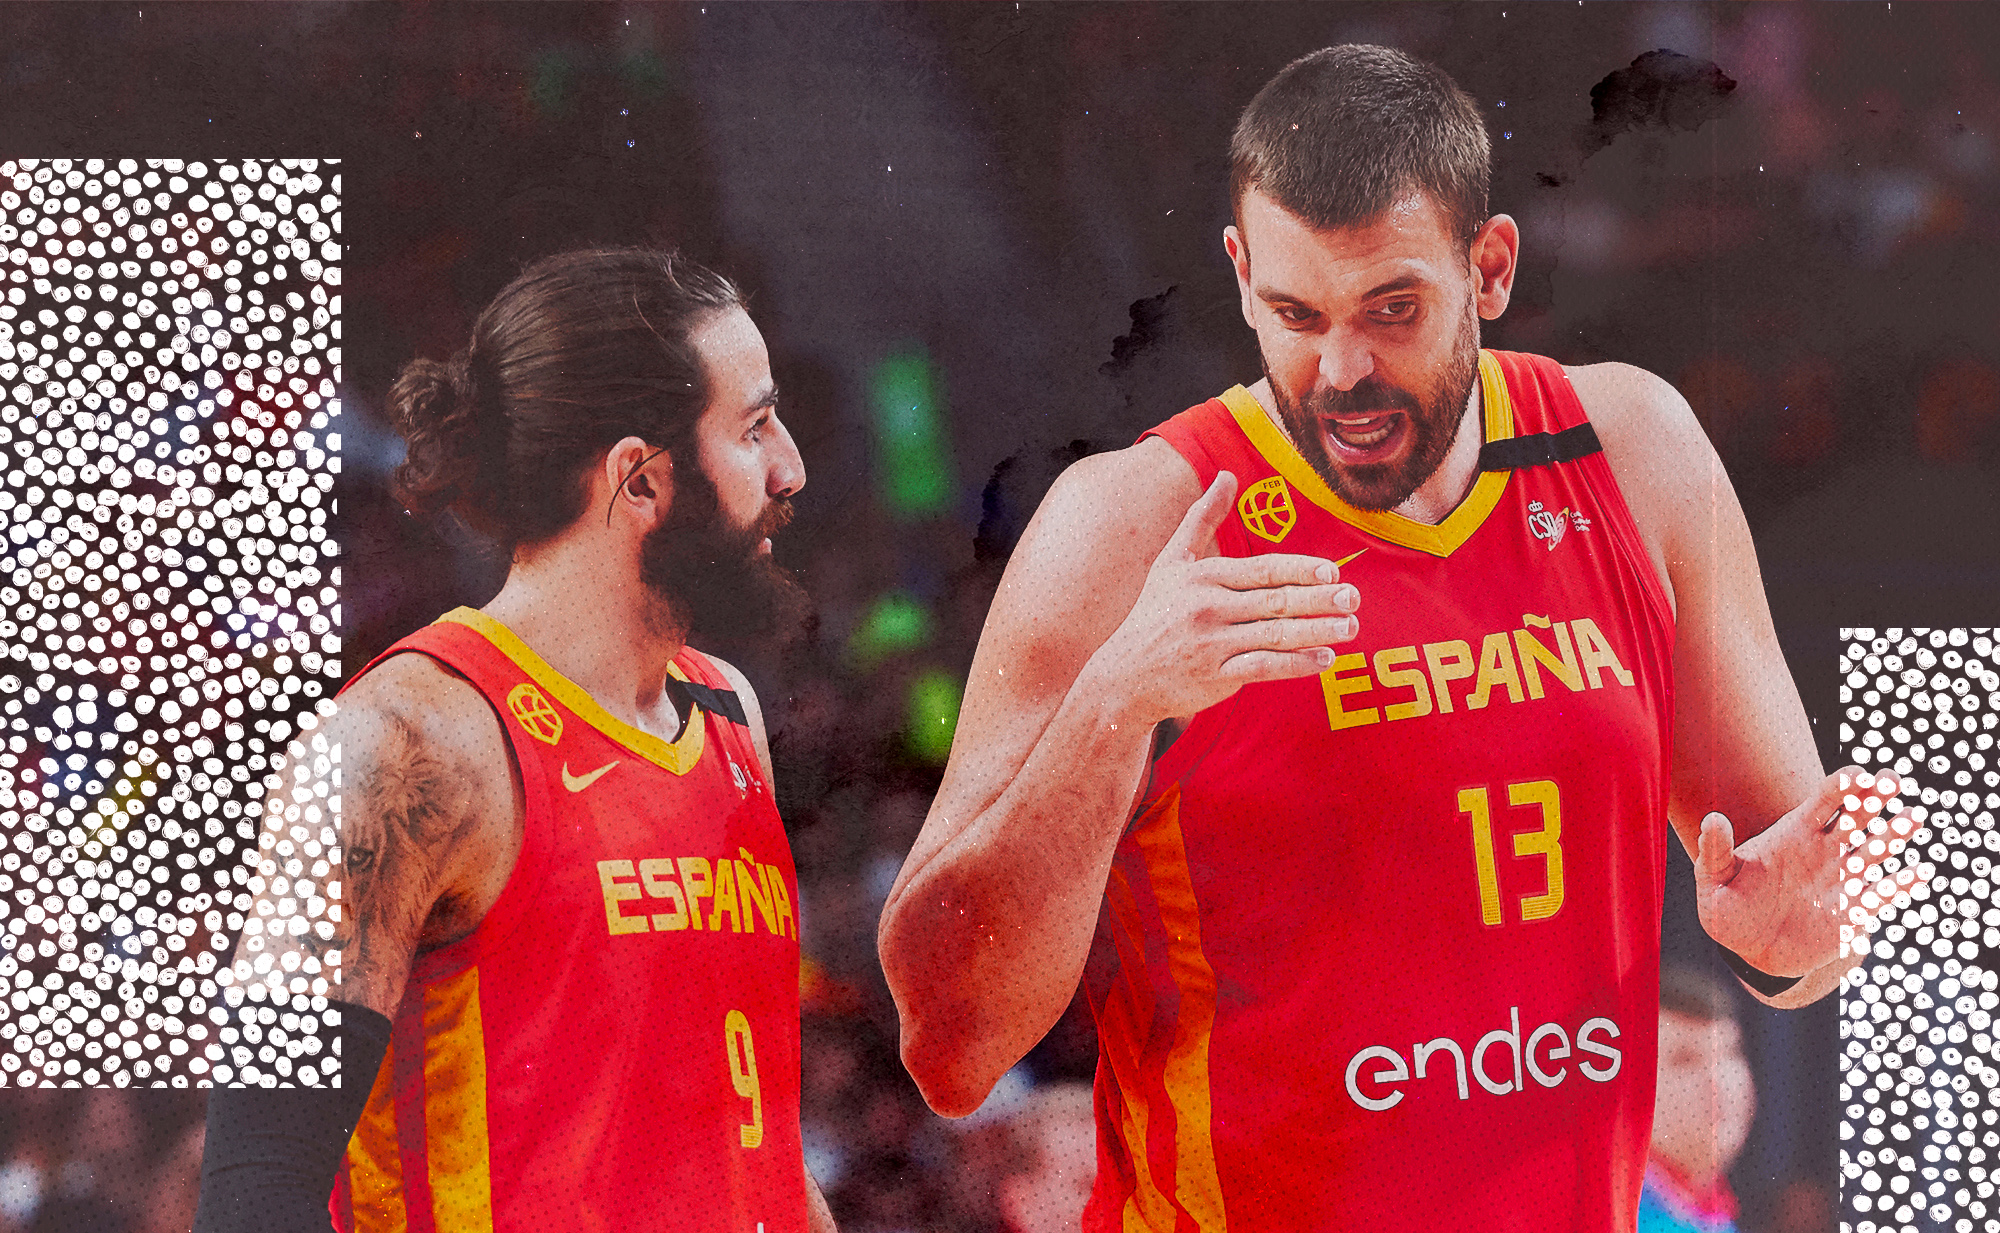 5 NBA lessons from the 2019 FIBA World Cup